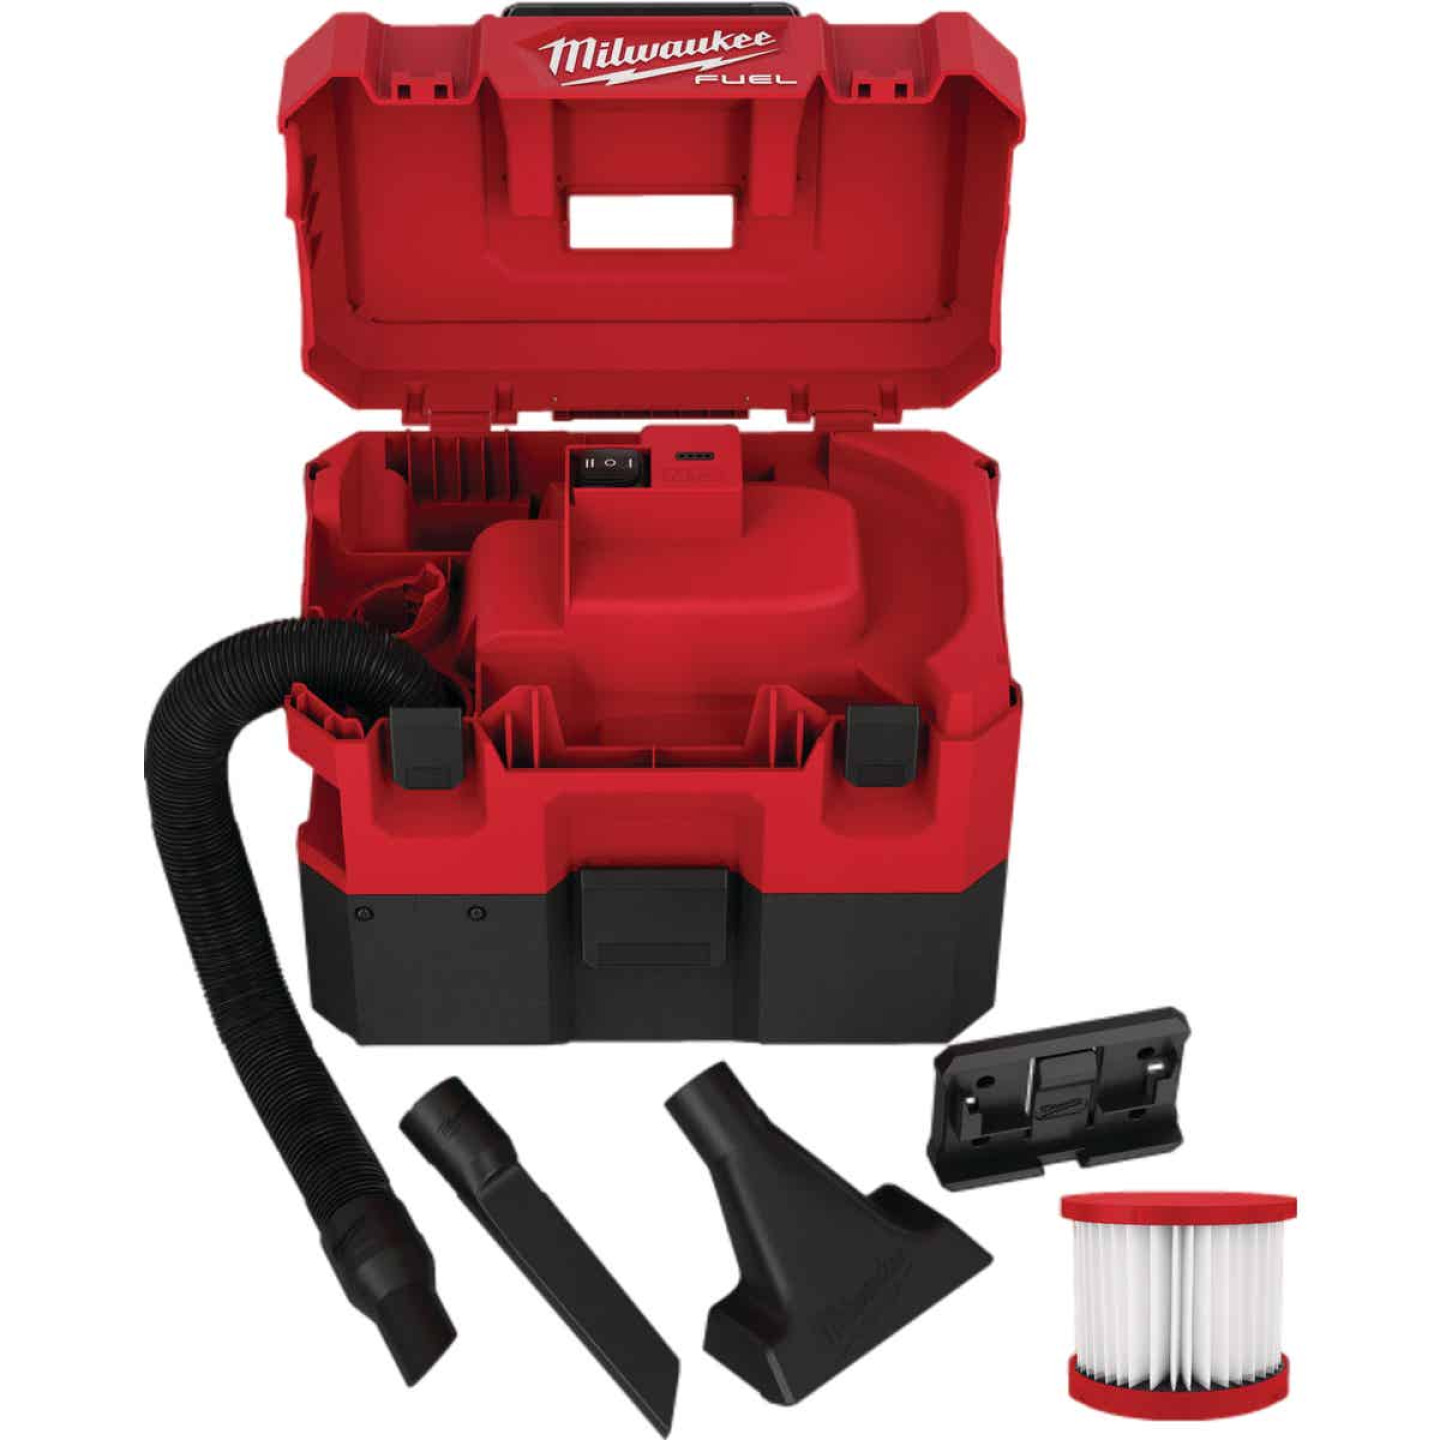 Milwaukee M12 FUEL 12 Volt Lithium-Ion Brushless Cordless 1.6 Gal. Wet/Dry Vacuum (Bare Tool) Image 2